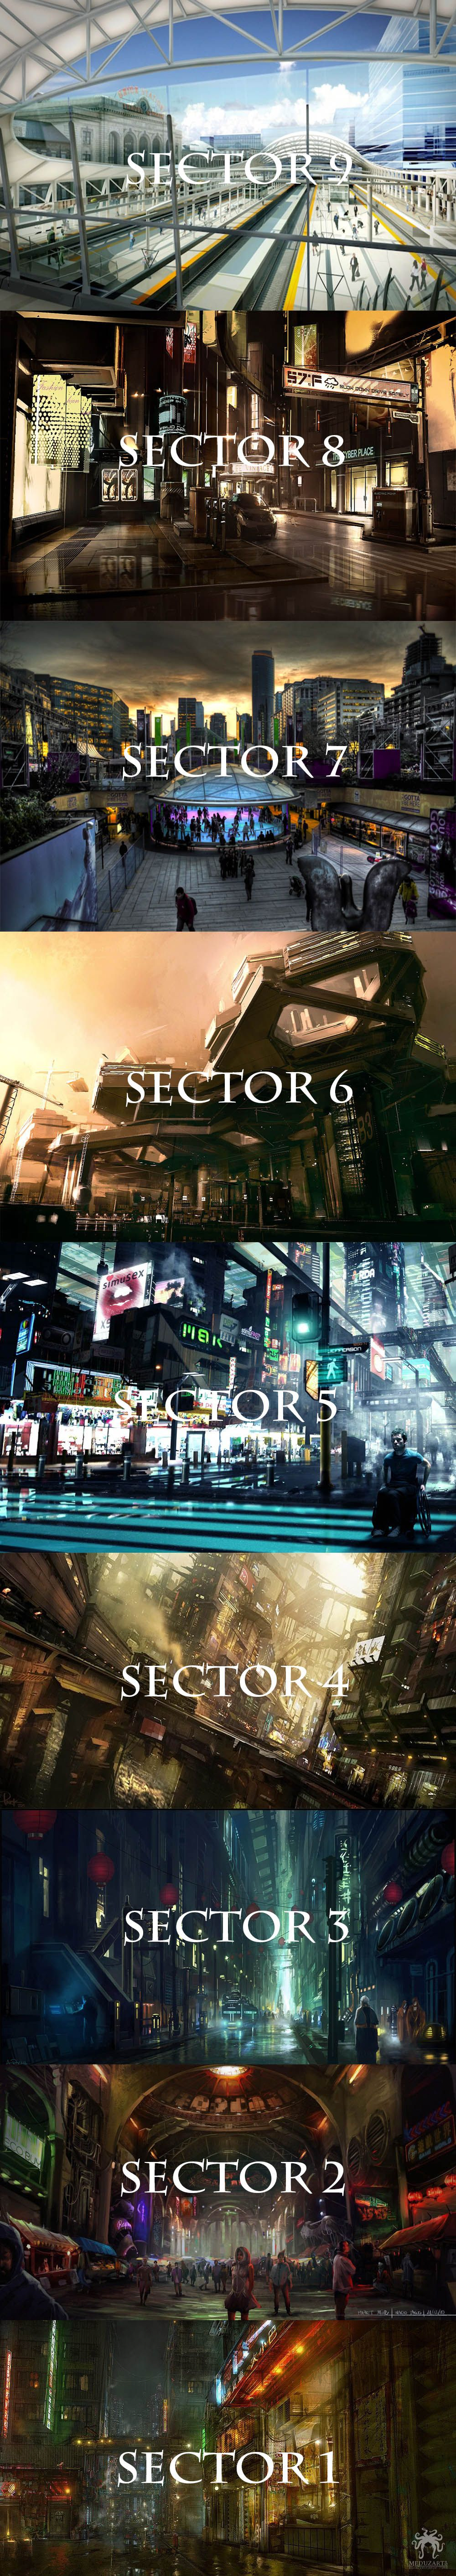 Sectors of the city 1-9 (Underground - Above ground) **None of the photo's are mine*Used only for example** Created by @paintsplatter24